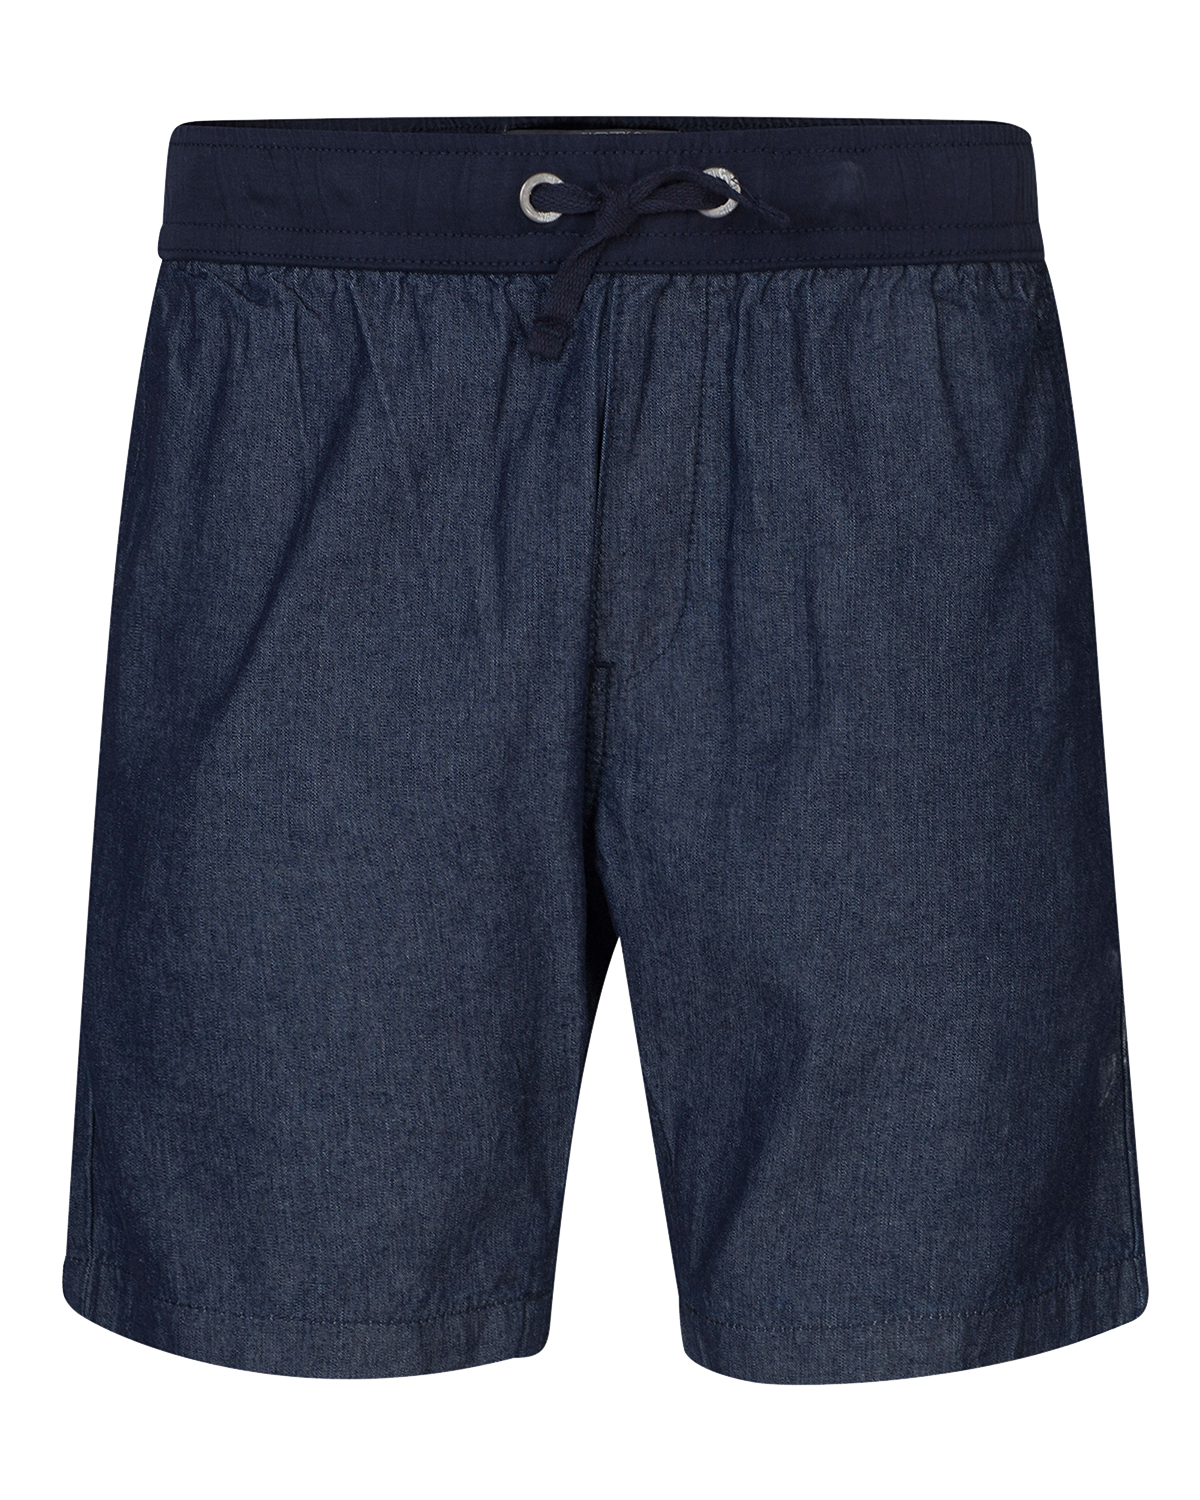 Heren denim jogger short